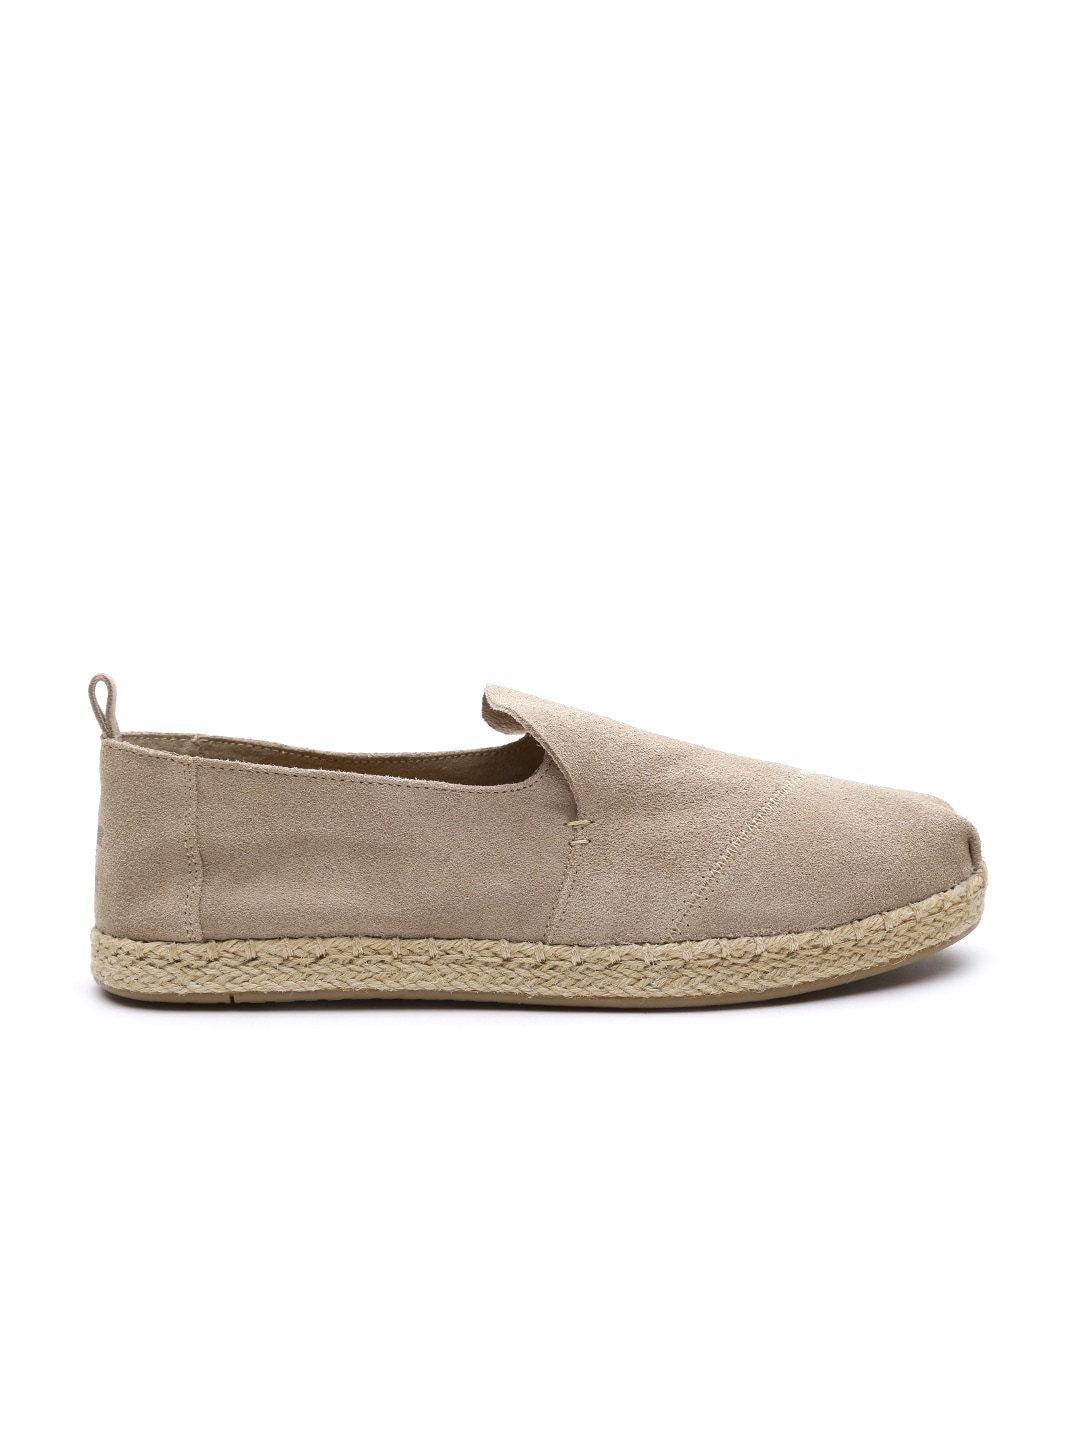 60b848ce283   Casual Shoes Flats - Buy   Casual Shoes Flats online in India